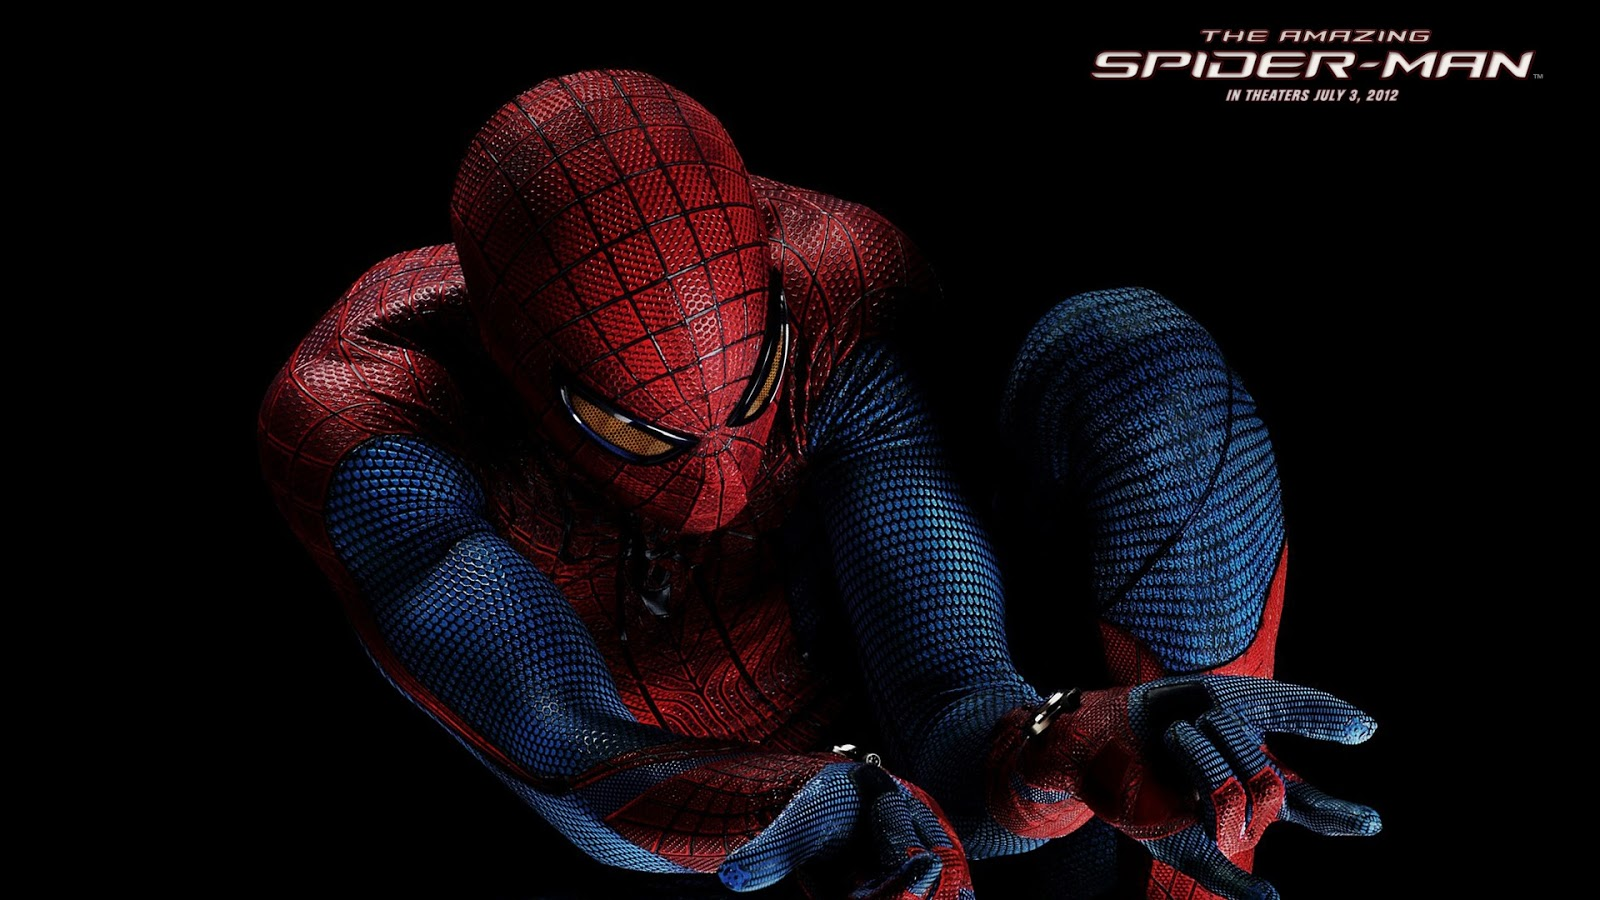 amazing spiderman hd wallpaper - photo #6